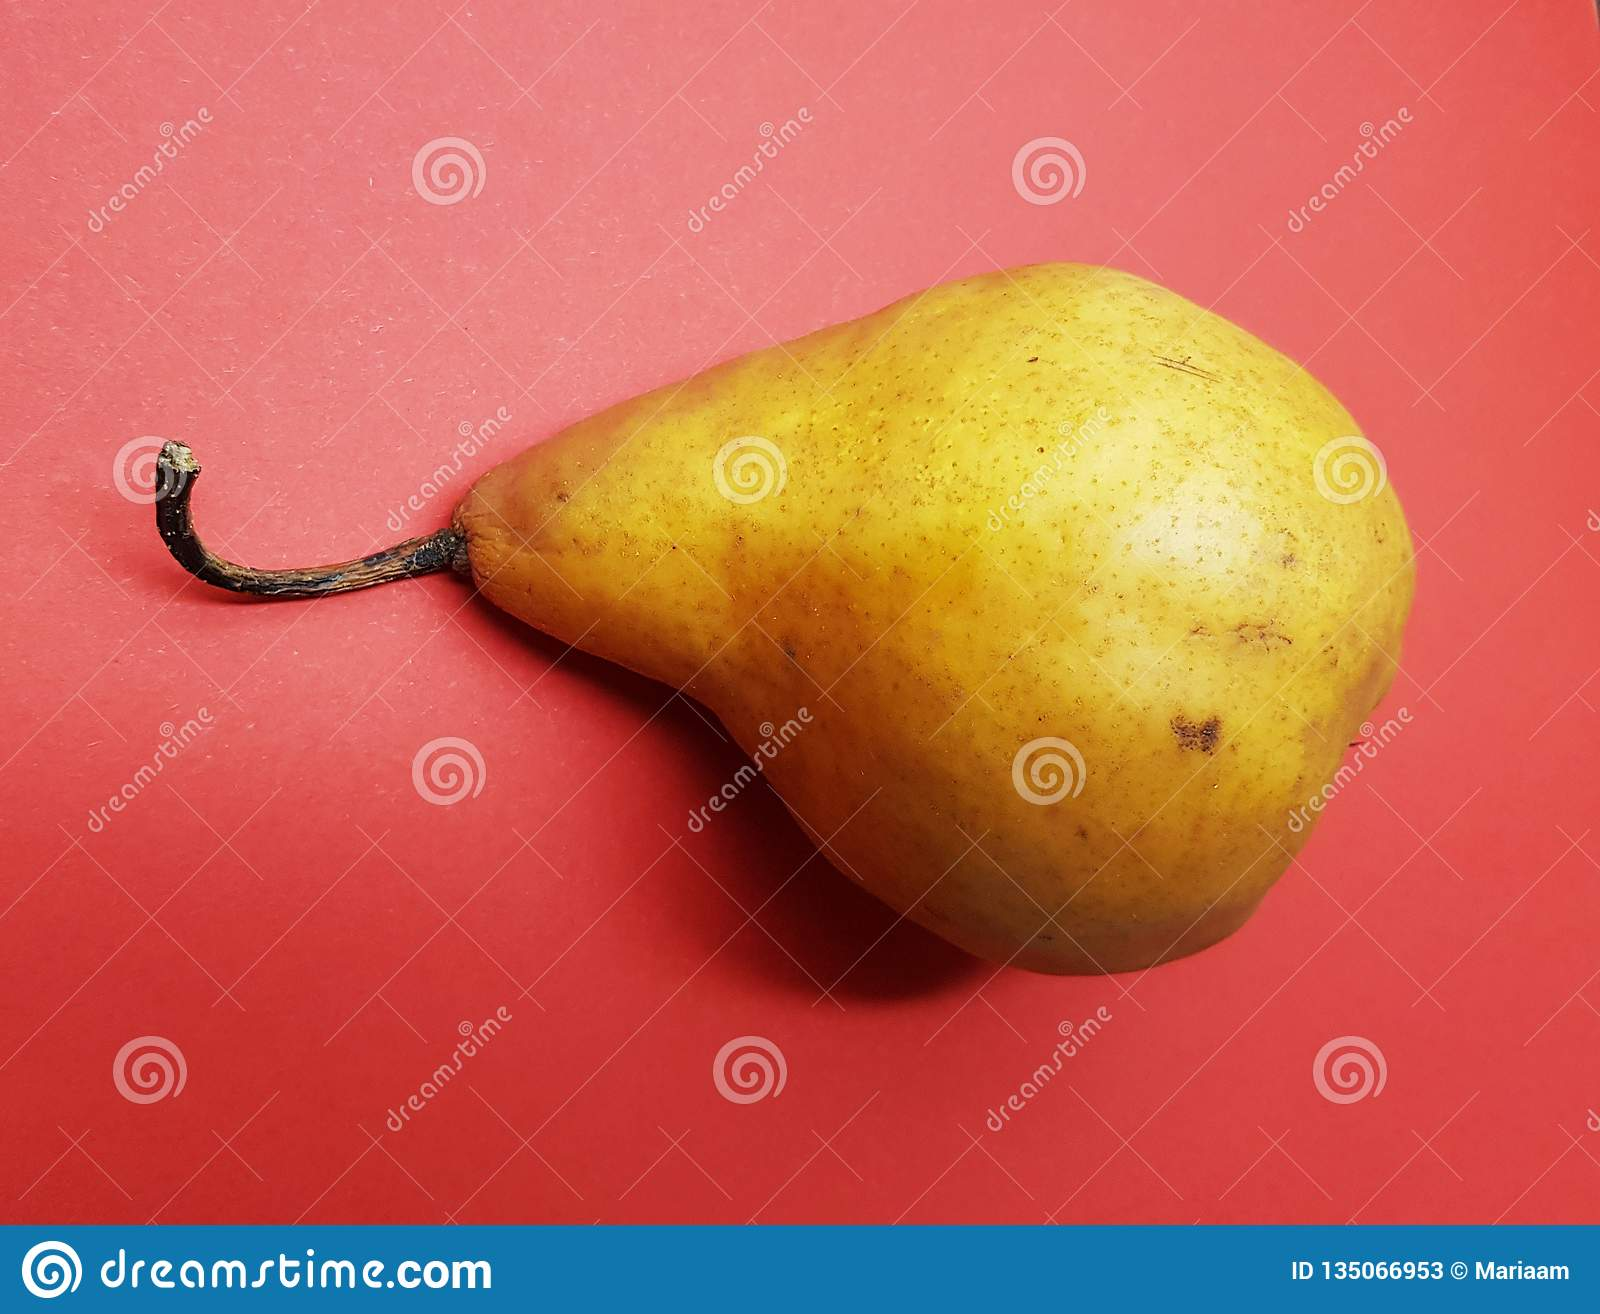 Yellow delicious pear over red background. Healthy pears.